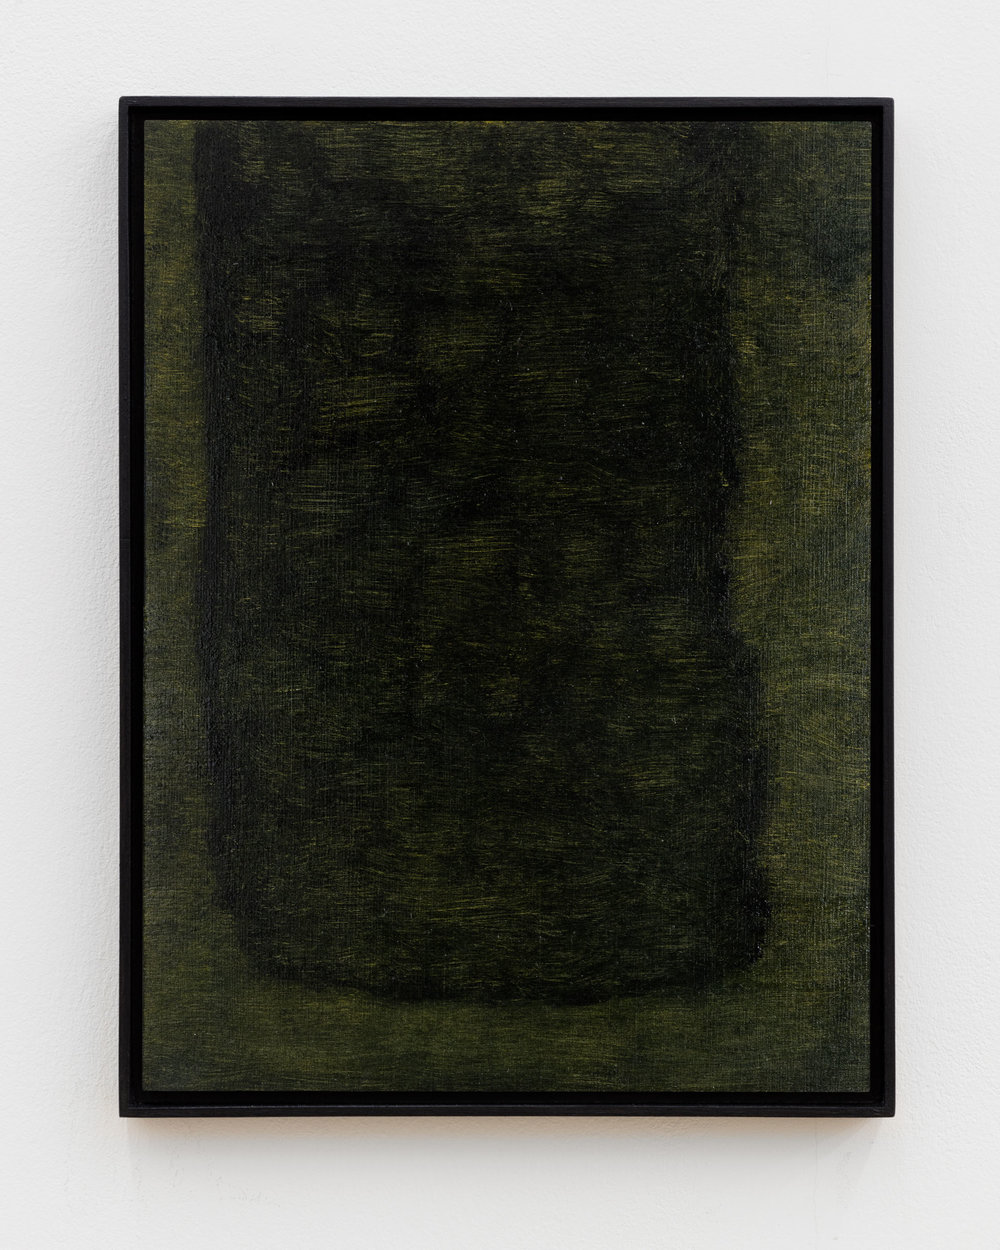 Veronika Hilger: Untitled, 2018, oil on paper on MDF in artists frame, 39,8 x 29,8 cm